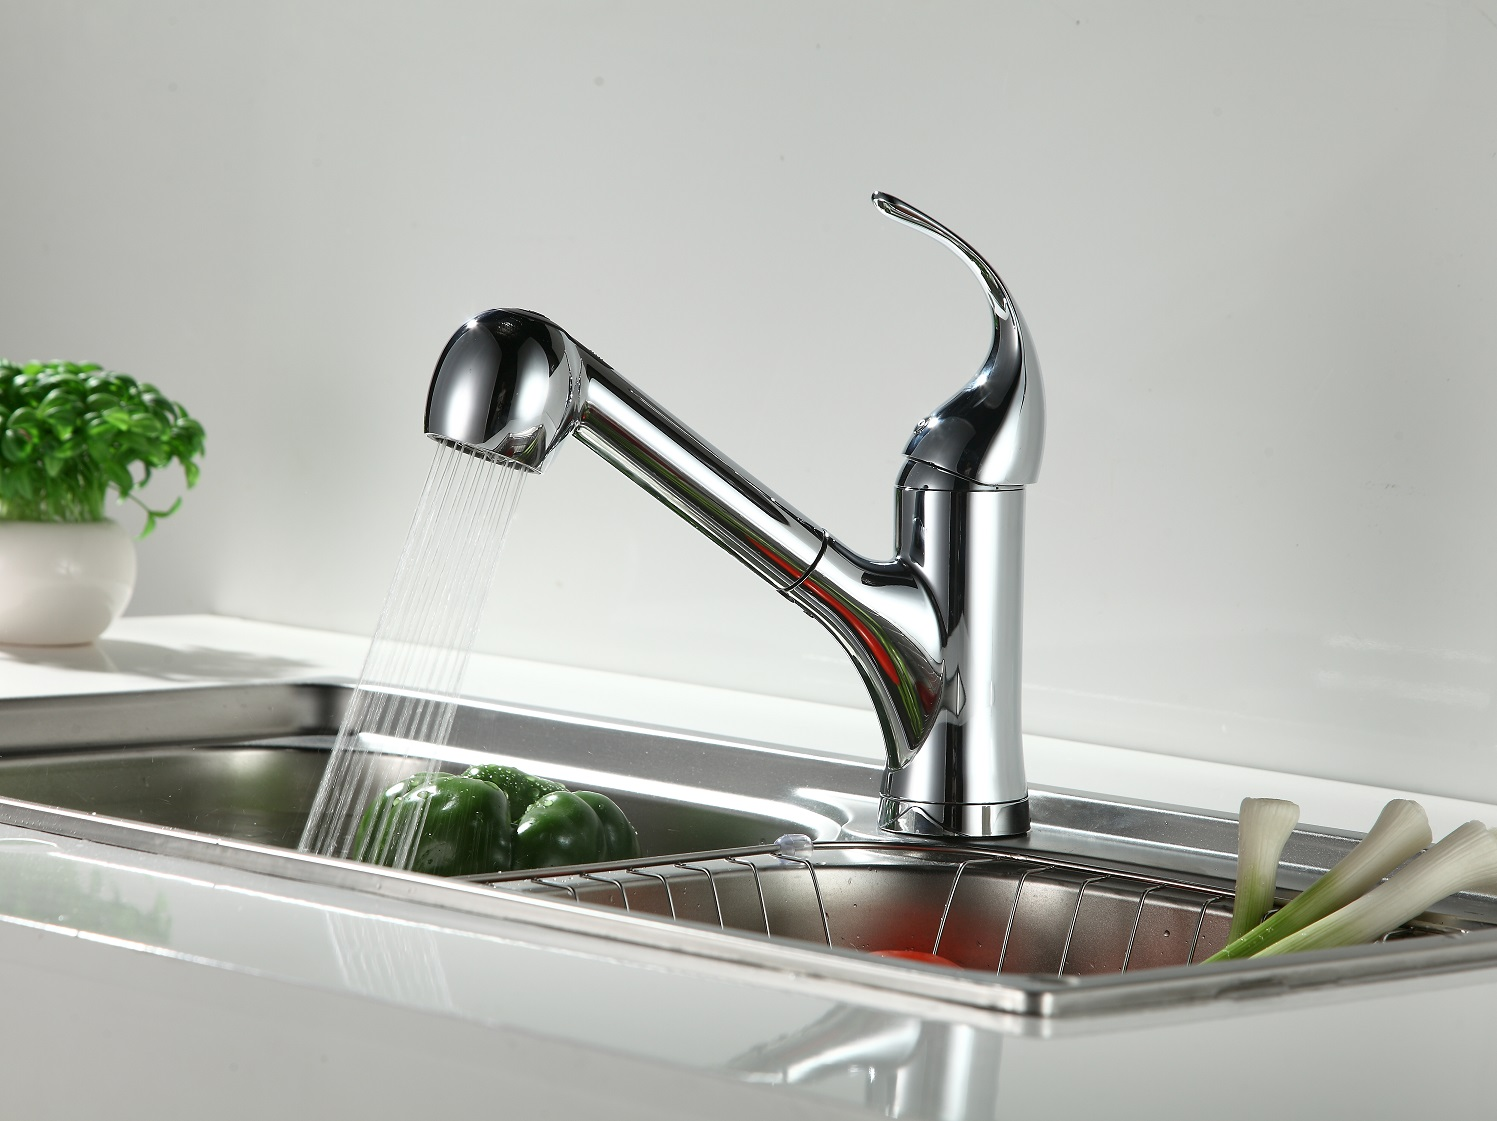 sink moen spot tullis lowes faucet pl dispensers at water pull handle stainless resist shop kitchen com down faucets